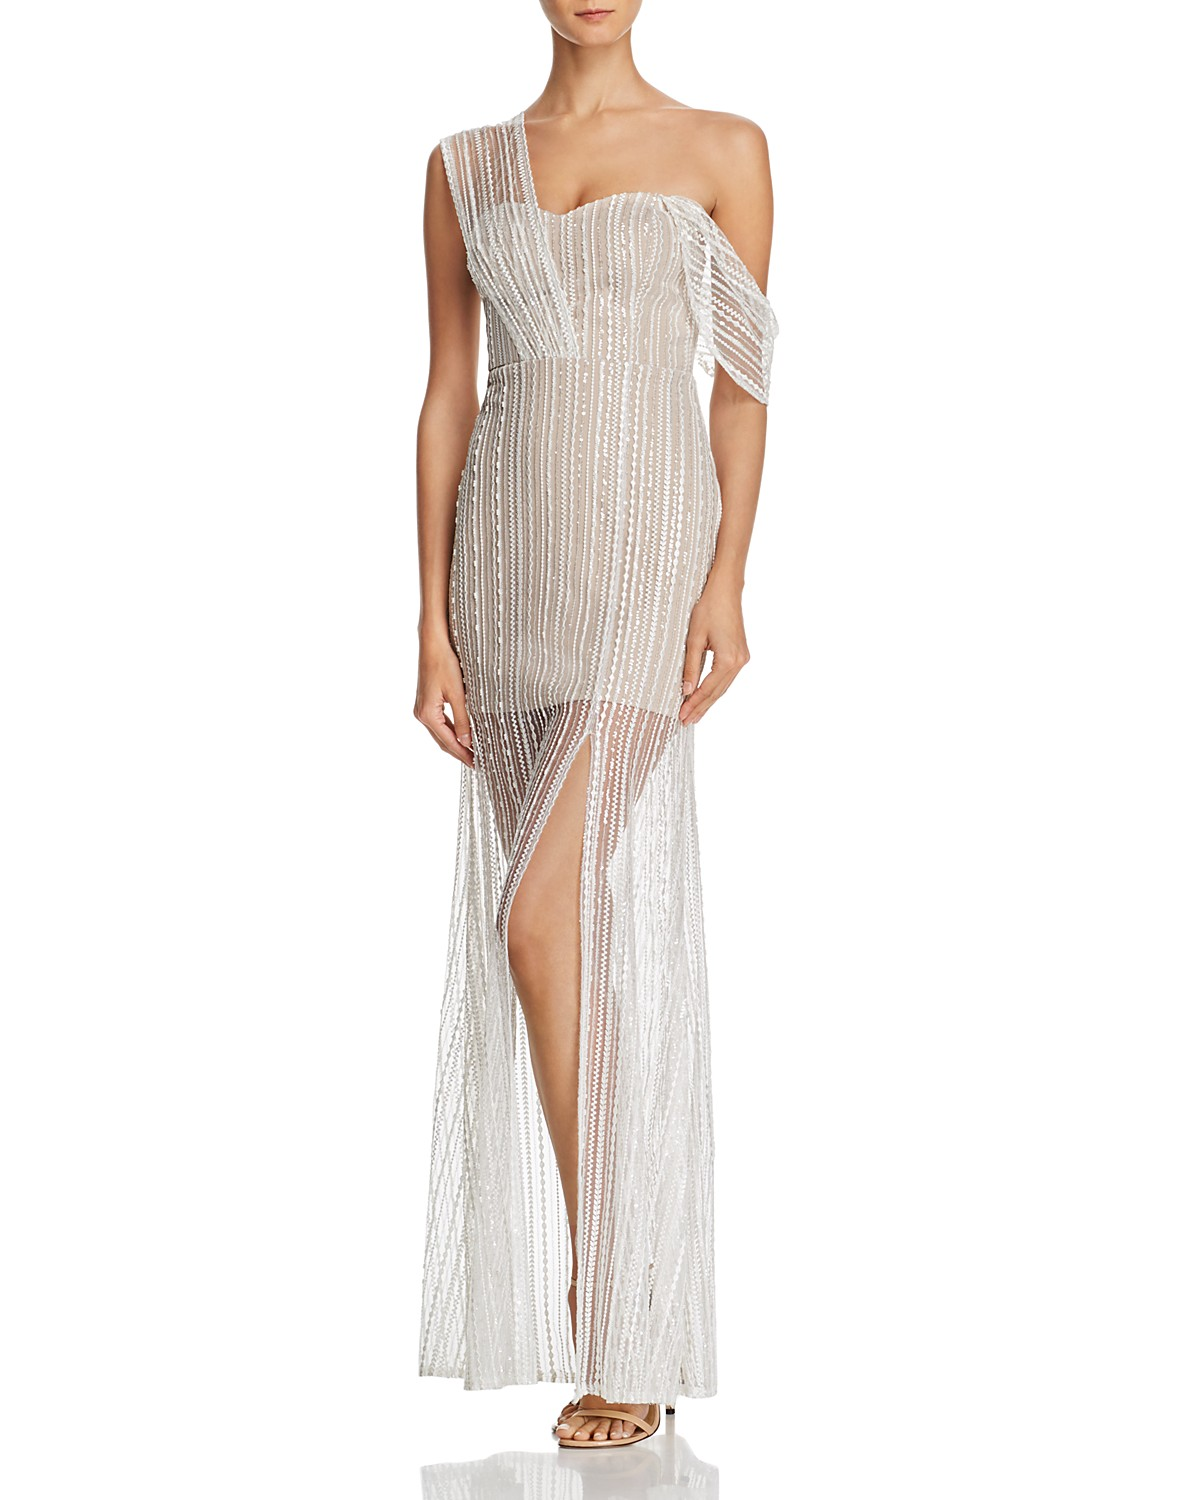 the greatest showman zendaya x aqua capsule collection embroidered one-shoulder gown